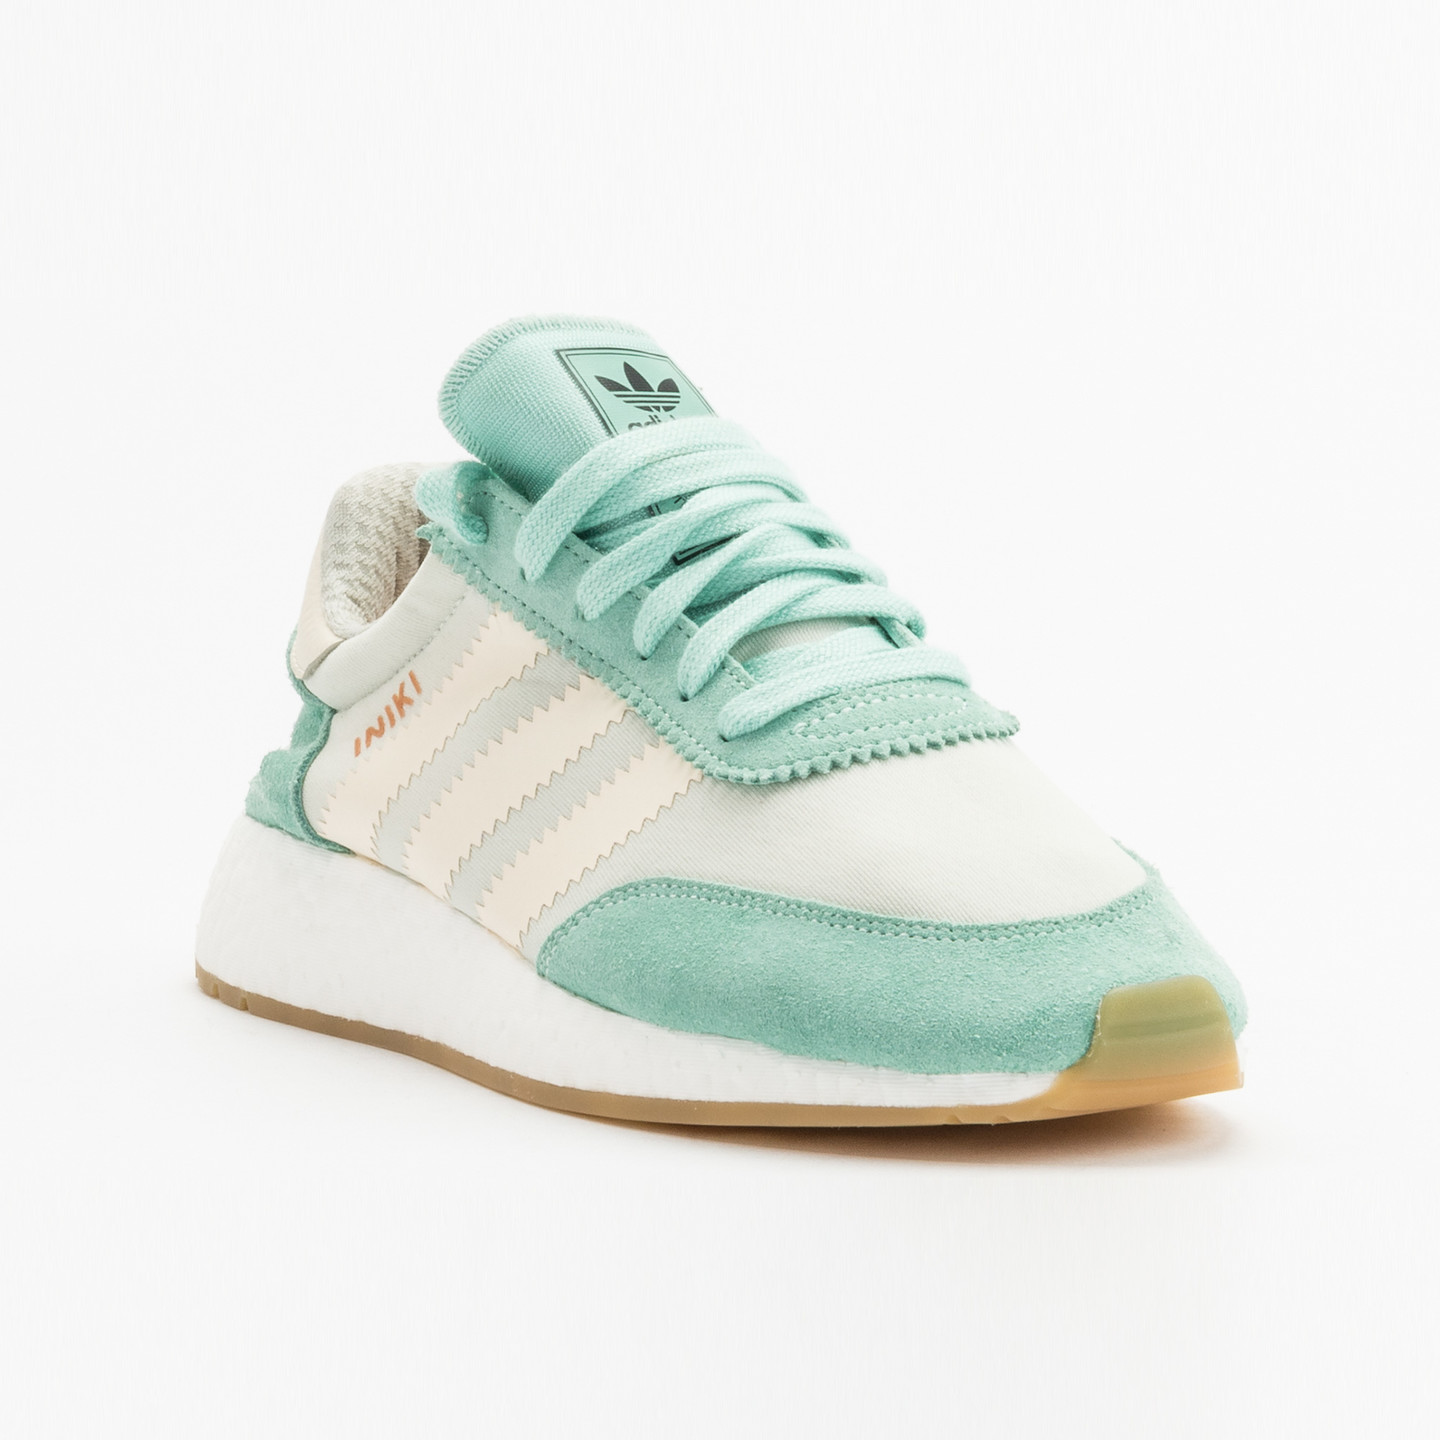 Adidas Iniki Runner W Easy Green / Cream White / Linen Green BA9994-36.66